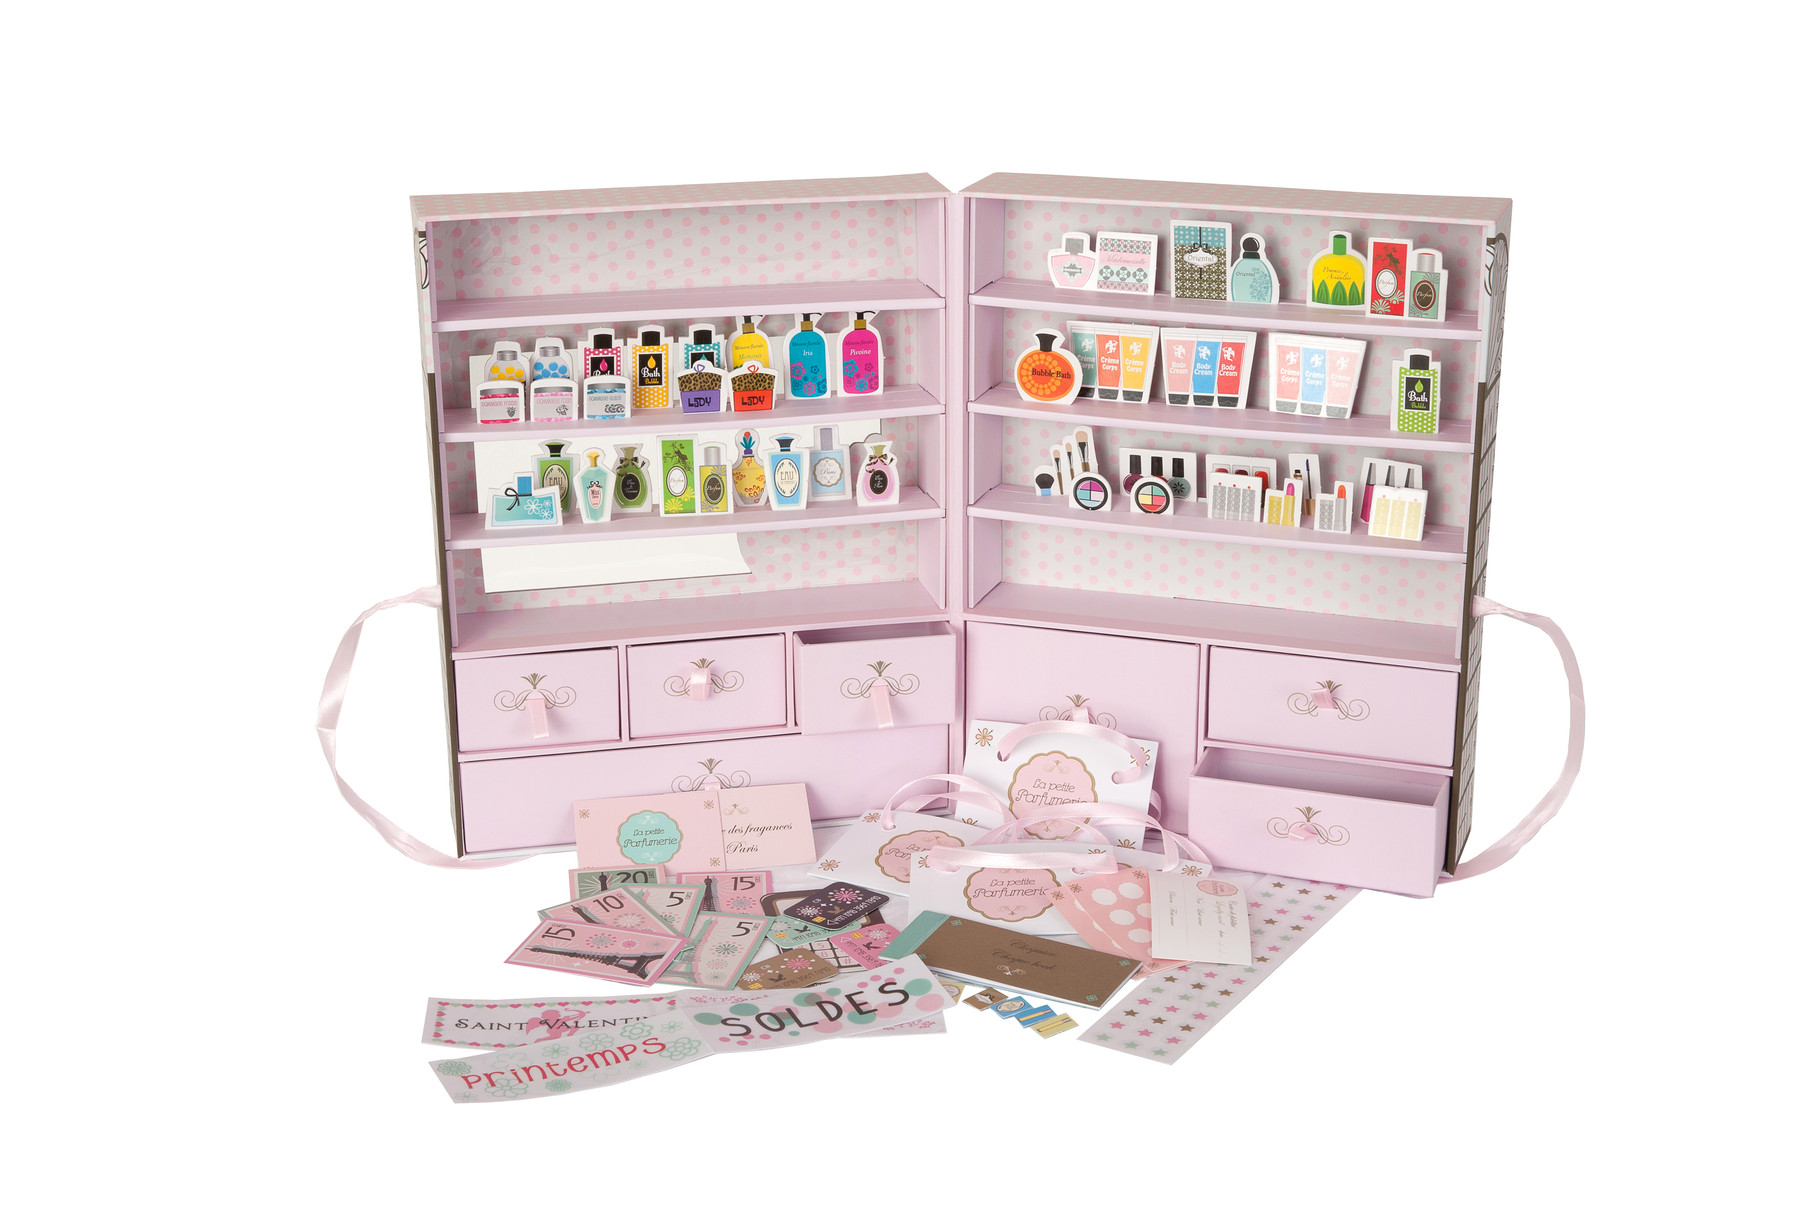 The little perfumery shop